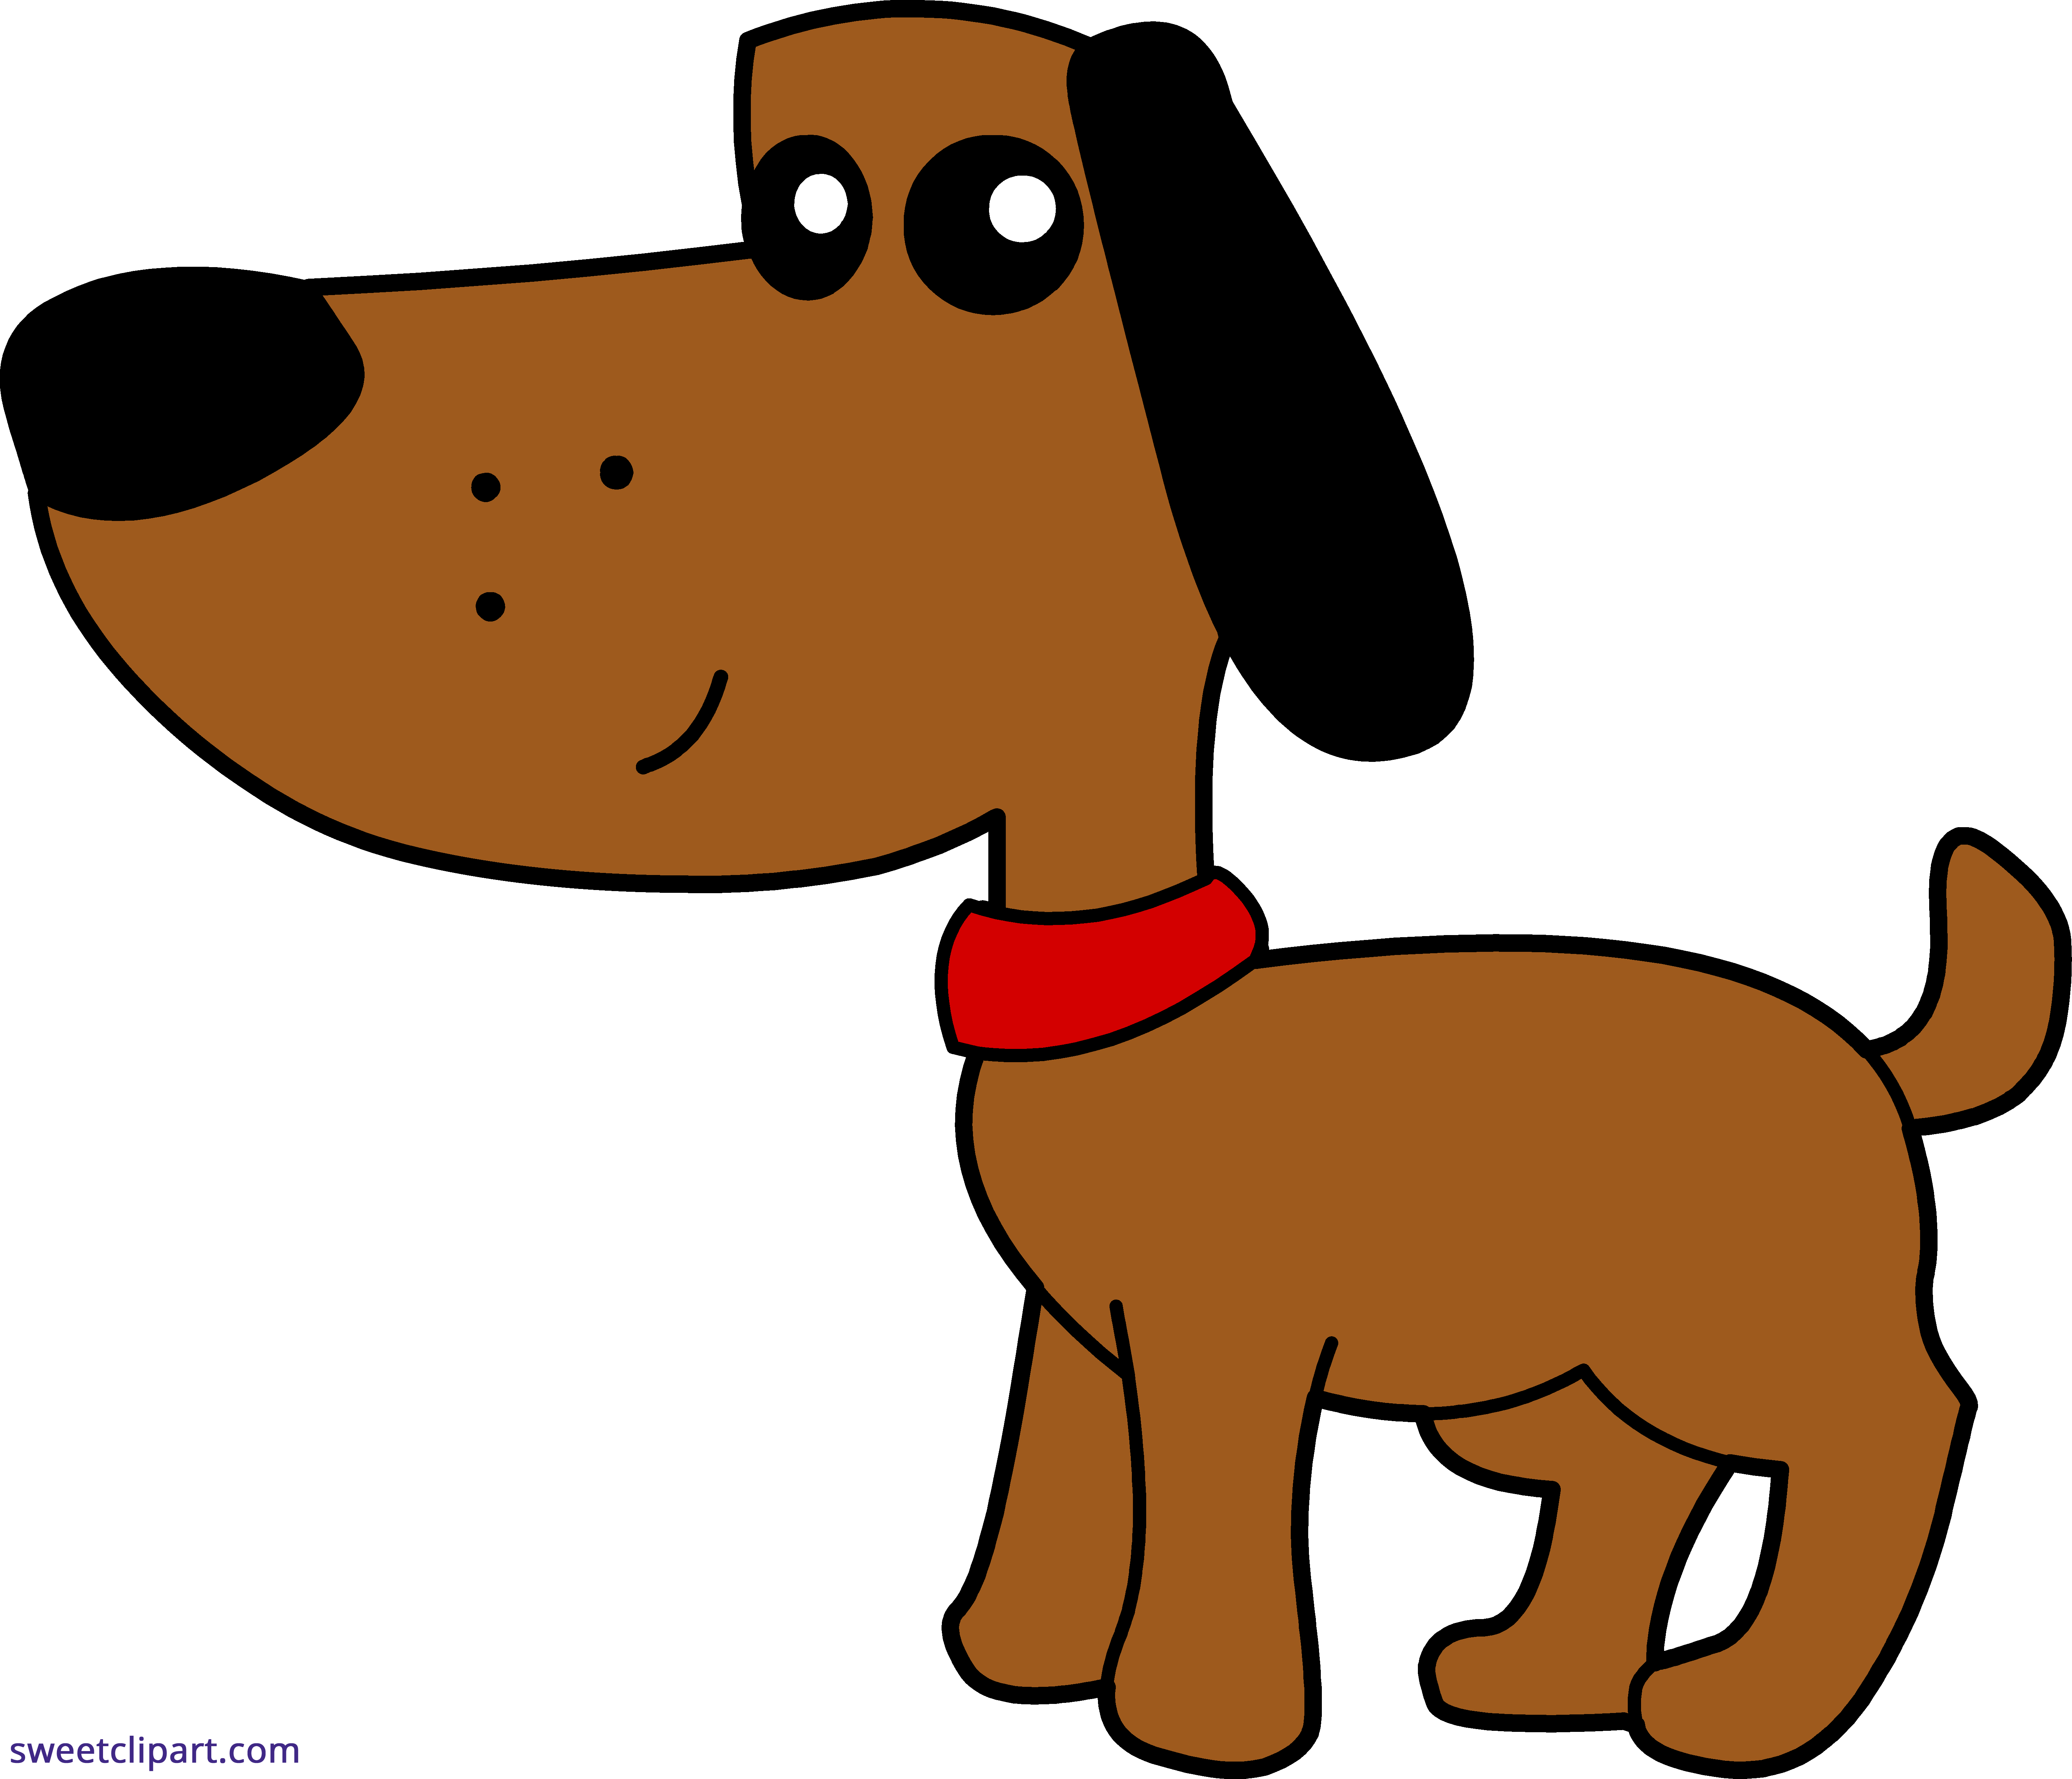 Real Dog Clipart At Getdrawings Com Free For Personal